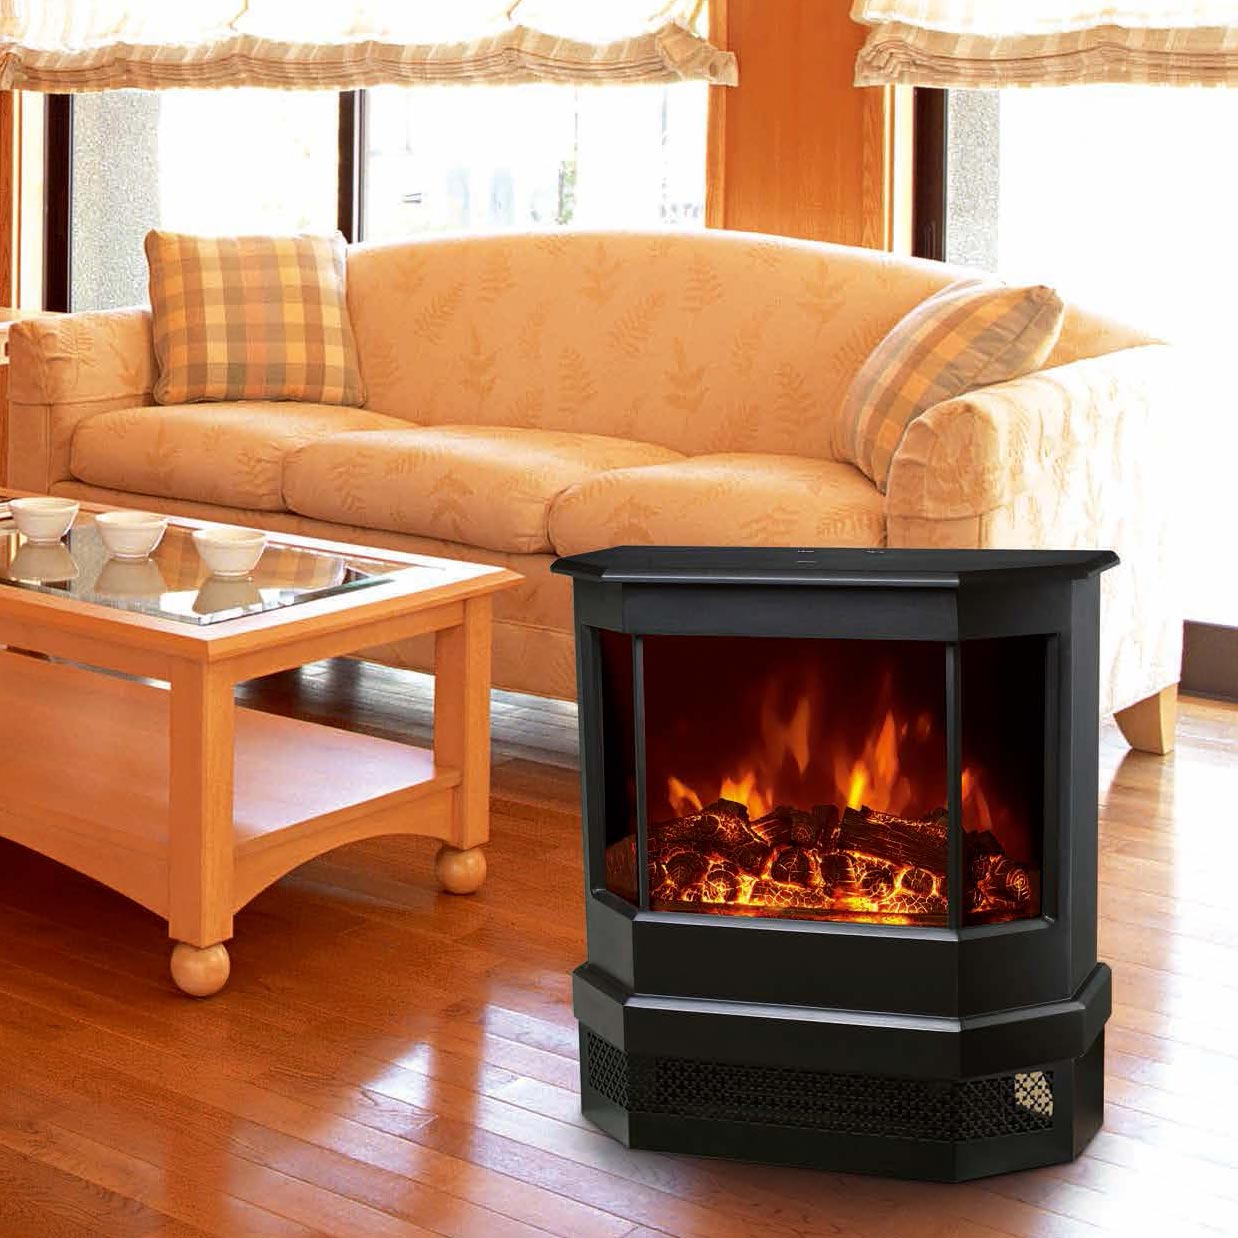 Electric Fireplace Heater 3 Sided Freestanding electric Stove EF330 Log flame effect comfortable war